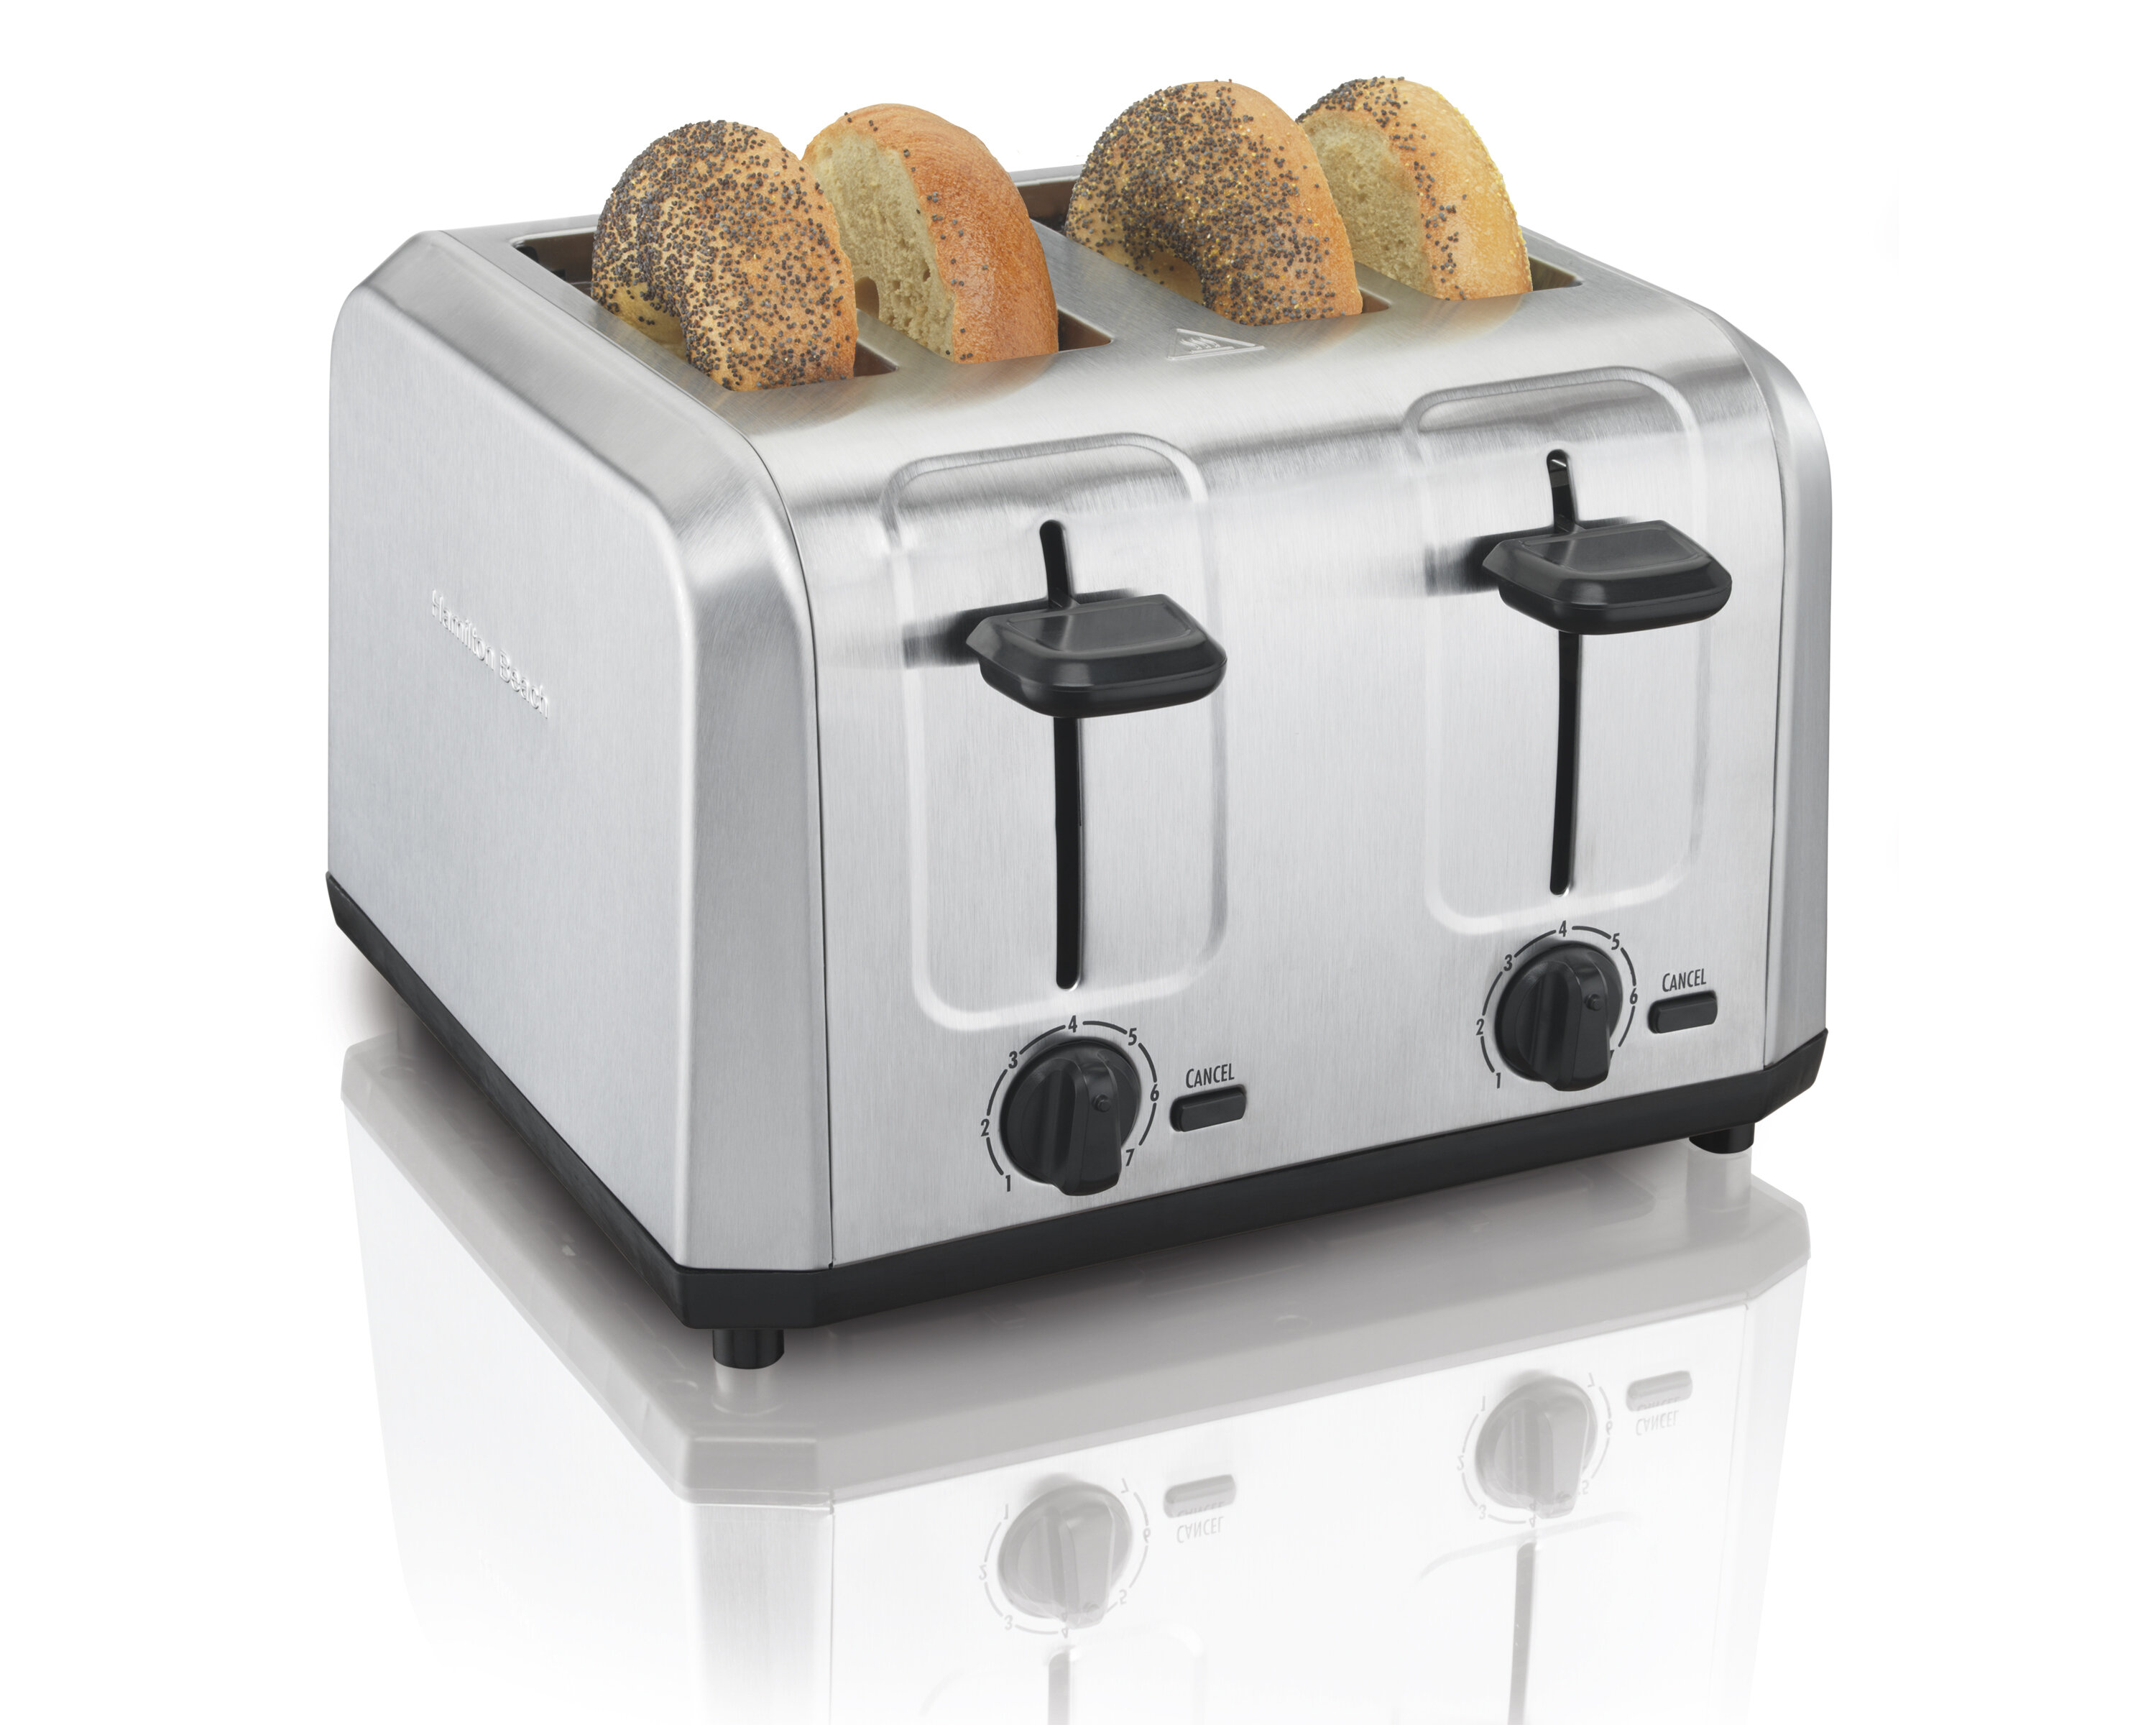 tost museosdemolina w slice repair metal cuisinart re c r info toaster chrome cpt nd brushed gret prepred reviews toster classic